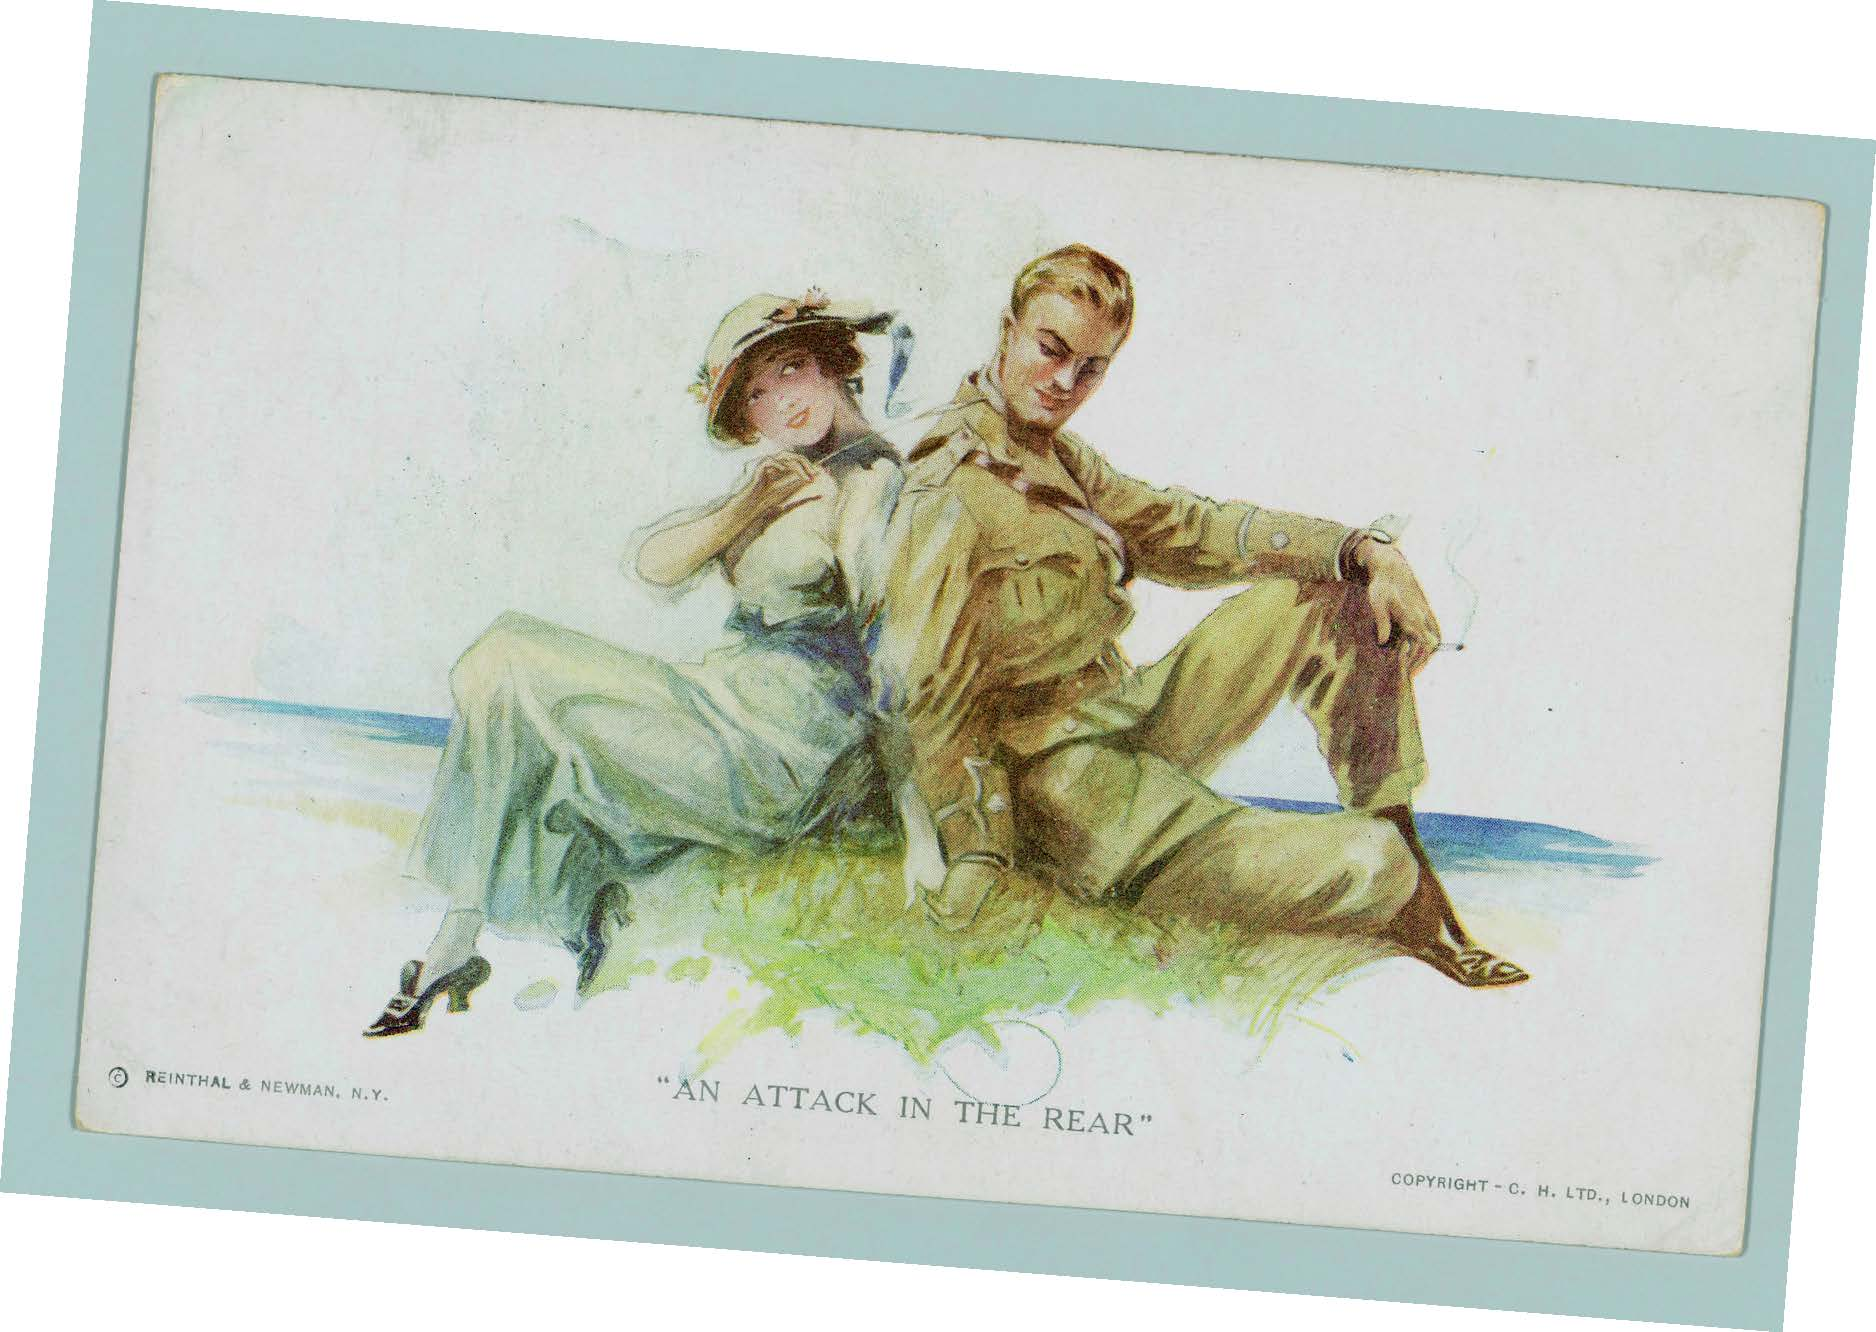 An Attack in theRear postcard, 1918, ©Reinthal & Newman, N.Y